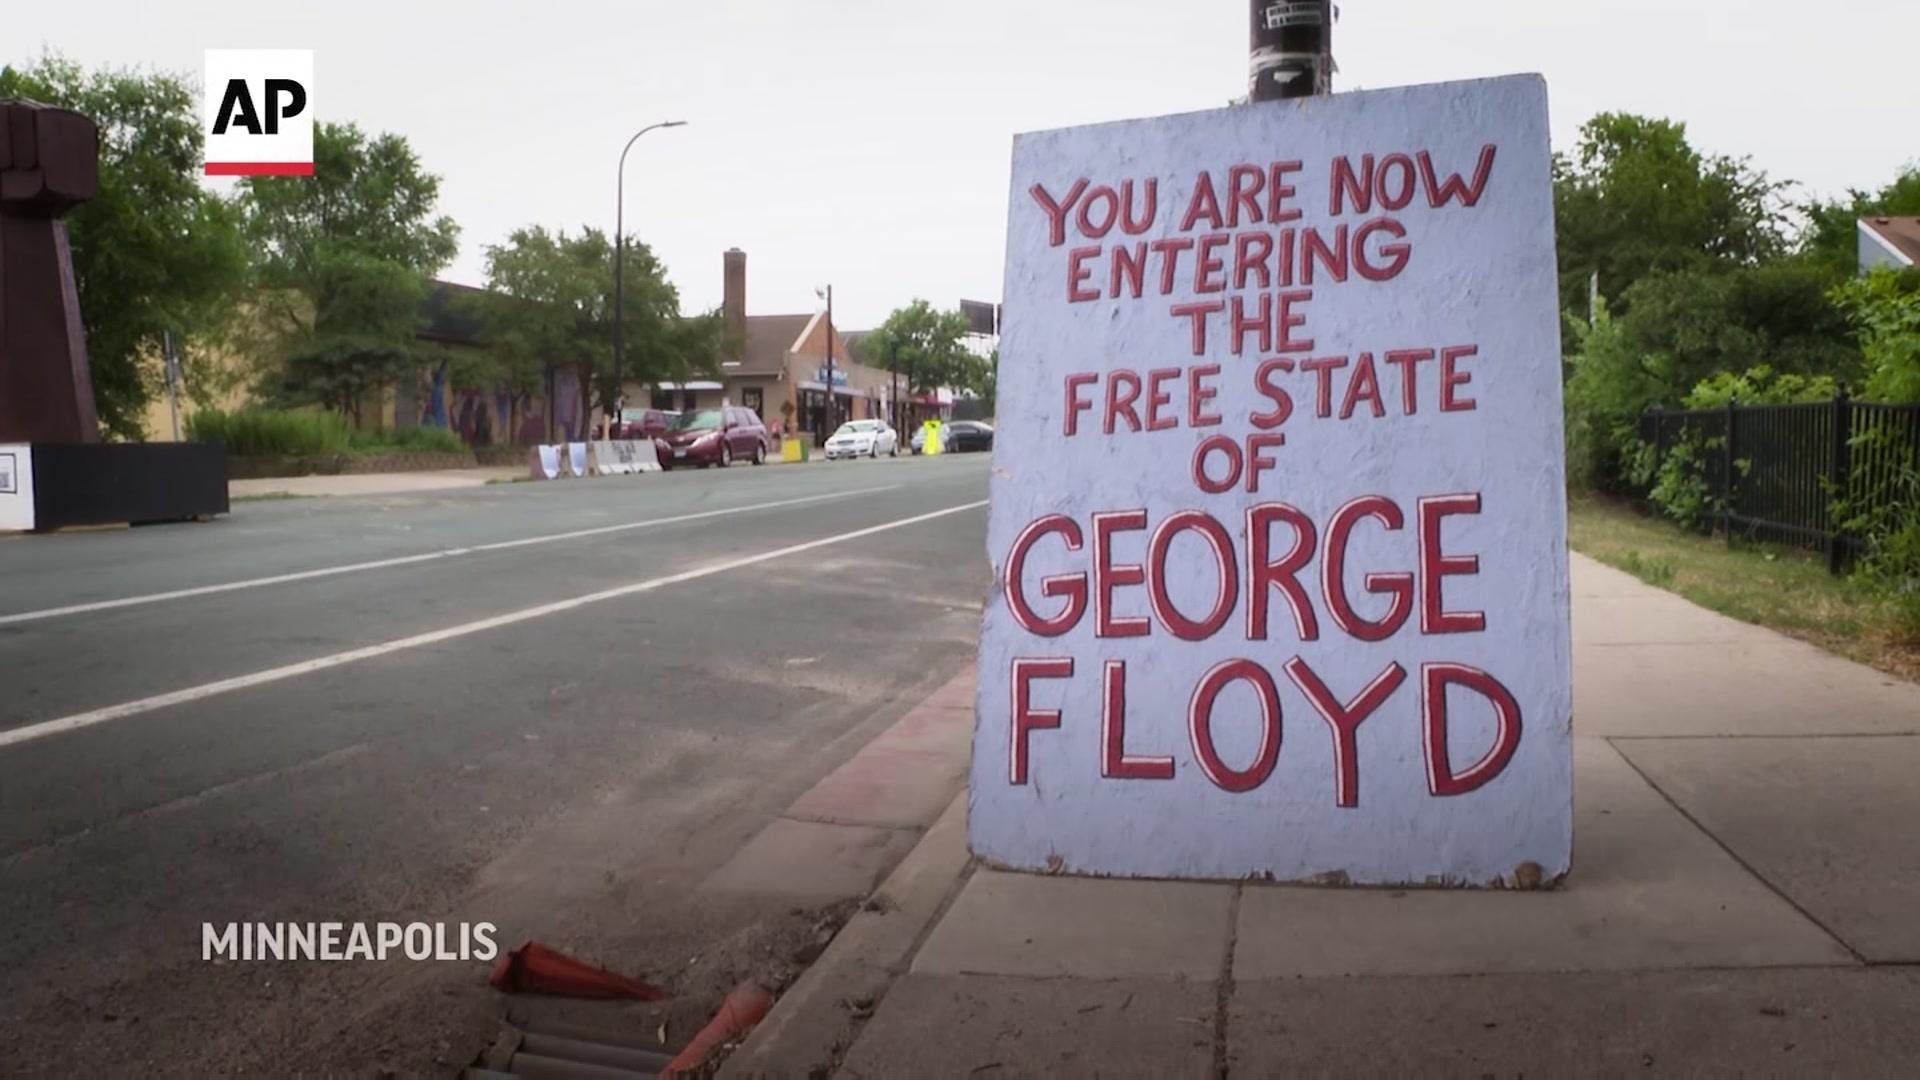 Visitors gather to reflect on George Floyd legacy after